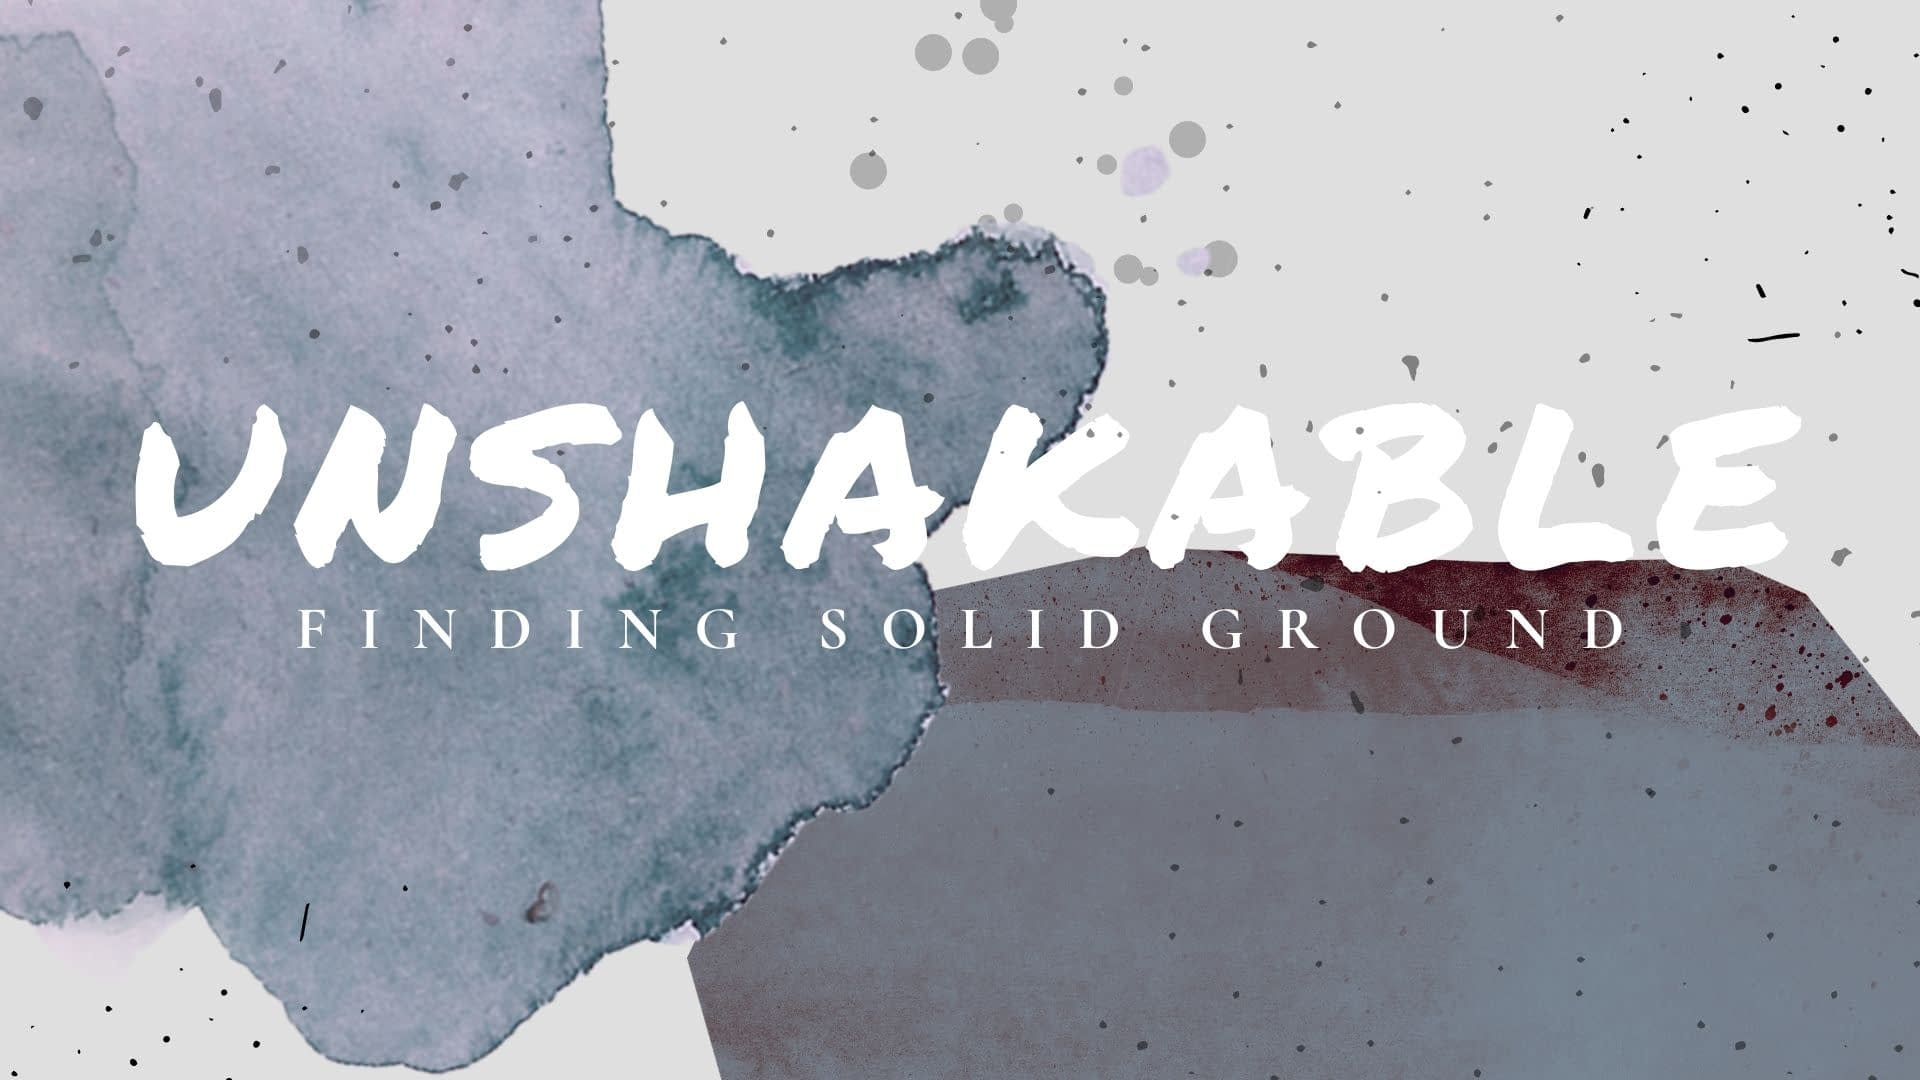 unshakable ground